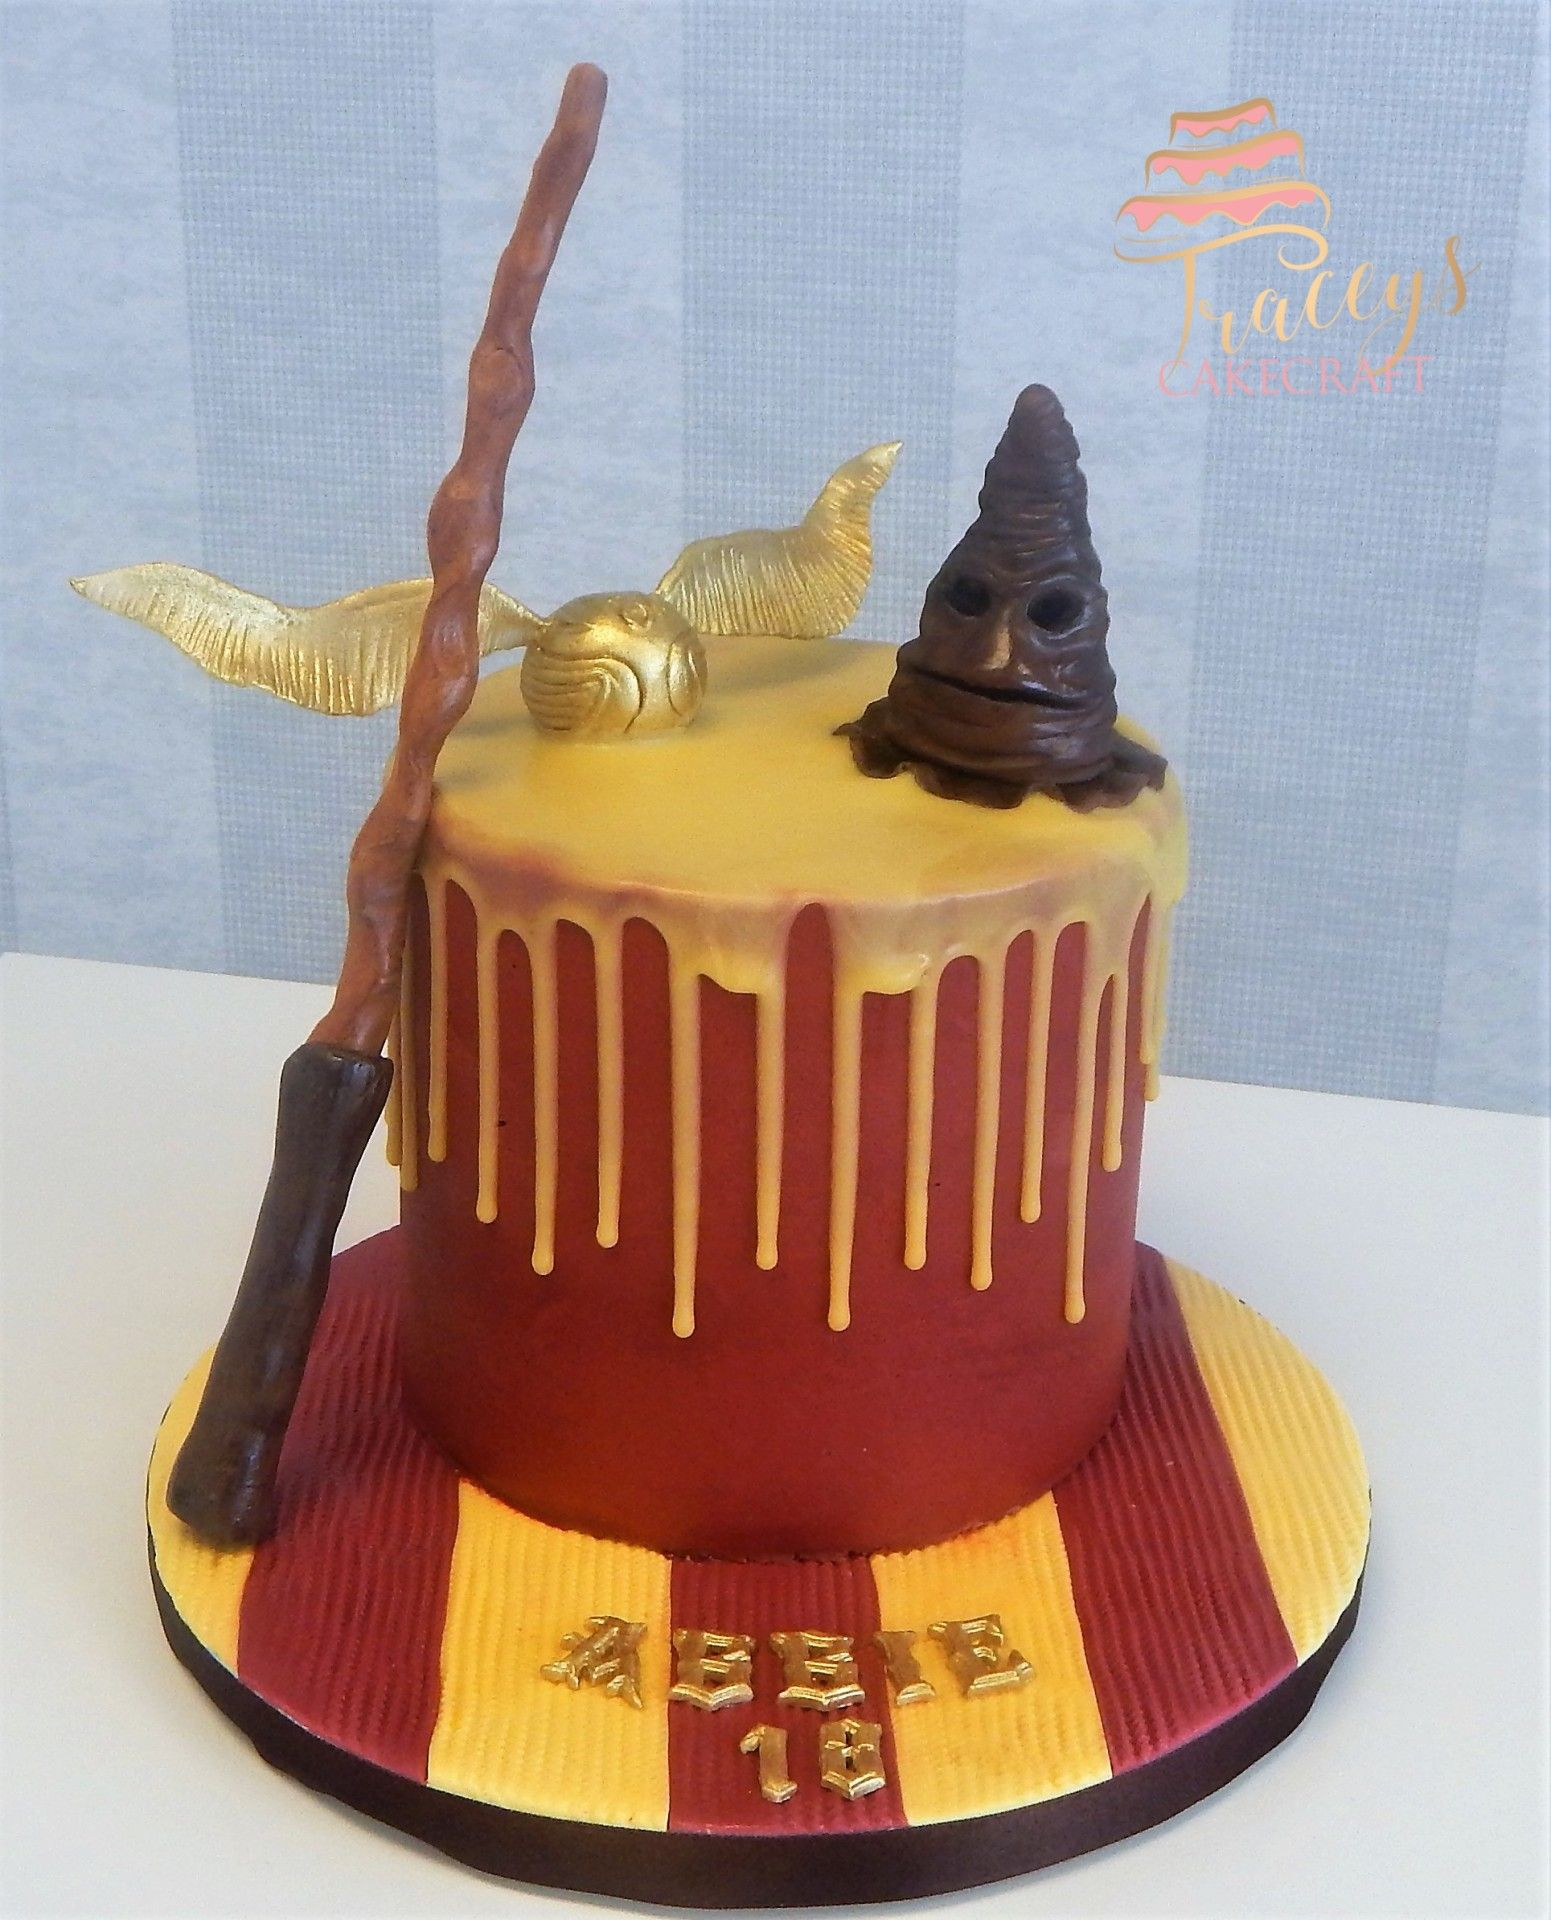 Harry Potter Drip Cake With Wand Sorting Hat And Golden Snitch Harry Potter Birthday Cake Harry Potter Cake Drip Cakes